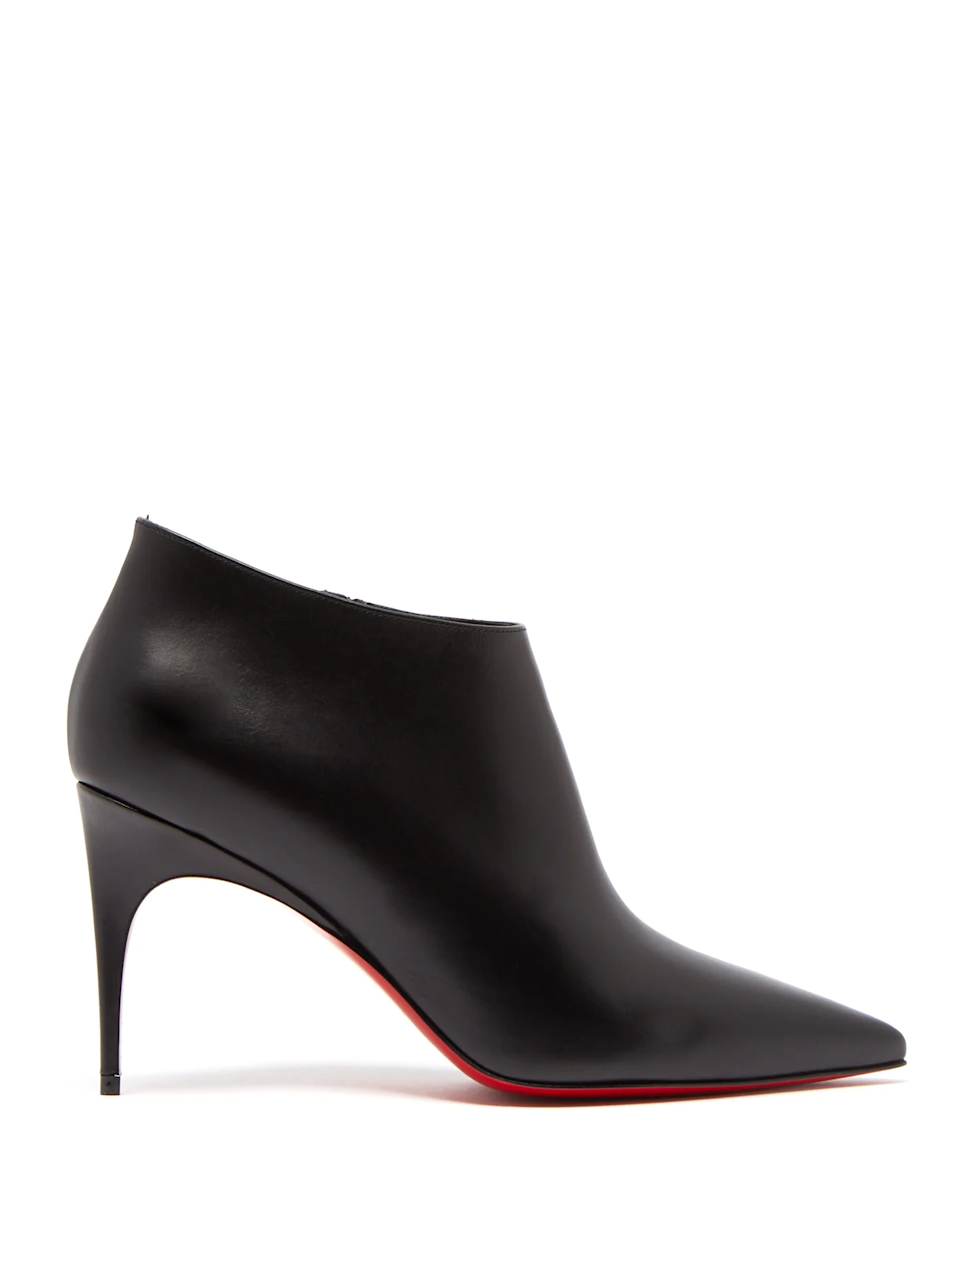 "<br><br><strong>Christian Louboutin</strong> Gorgona 85 leather ankle boots, $, available at <a href=""https://go.skimresources.com/?id=30283X879131&url=https%3A%2F%2Fwww.matchesfashion.com%2Fus%2Fproducts%2FChristian-Louboutin-Gorgona-85-leather-ankle-boots-1278792"" rel=""nofollow noopener"" target=""_blank"" data-ylk=""slk:Matches Fashion"" class=""link rapid-noclick-resp"">Matches Fashion</a>"